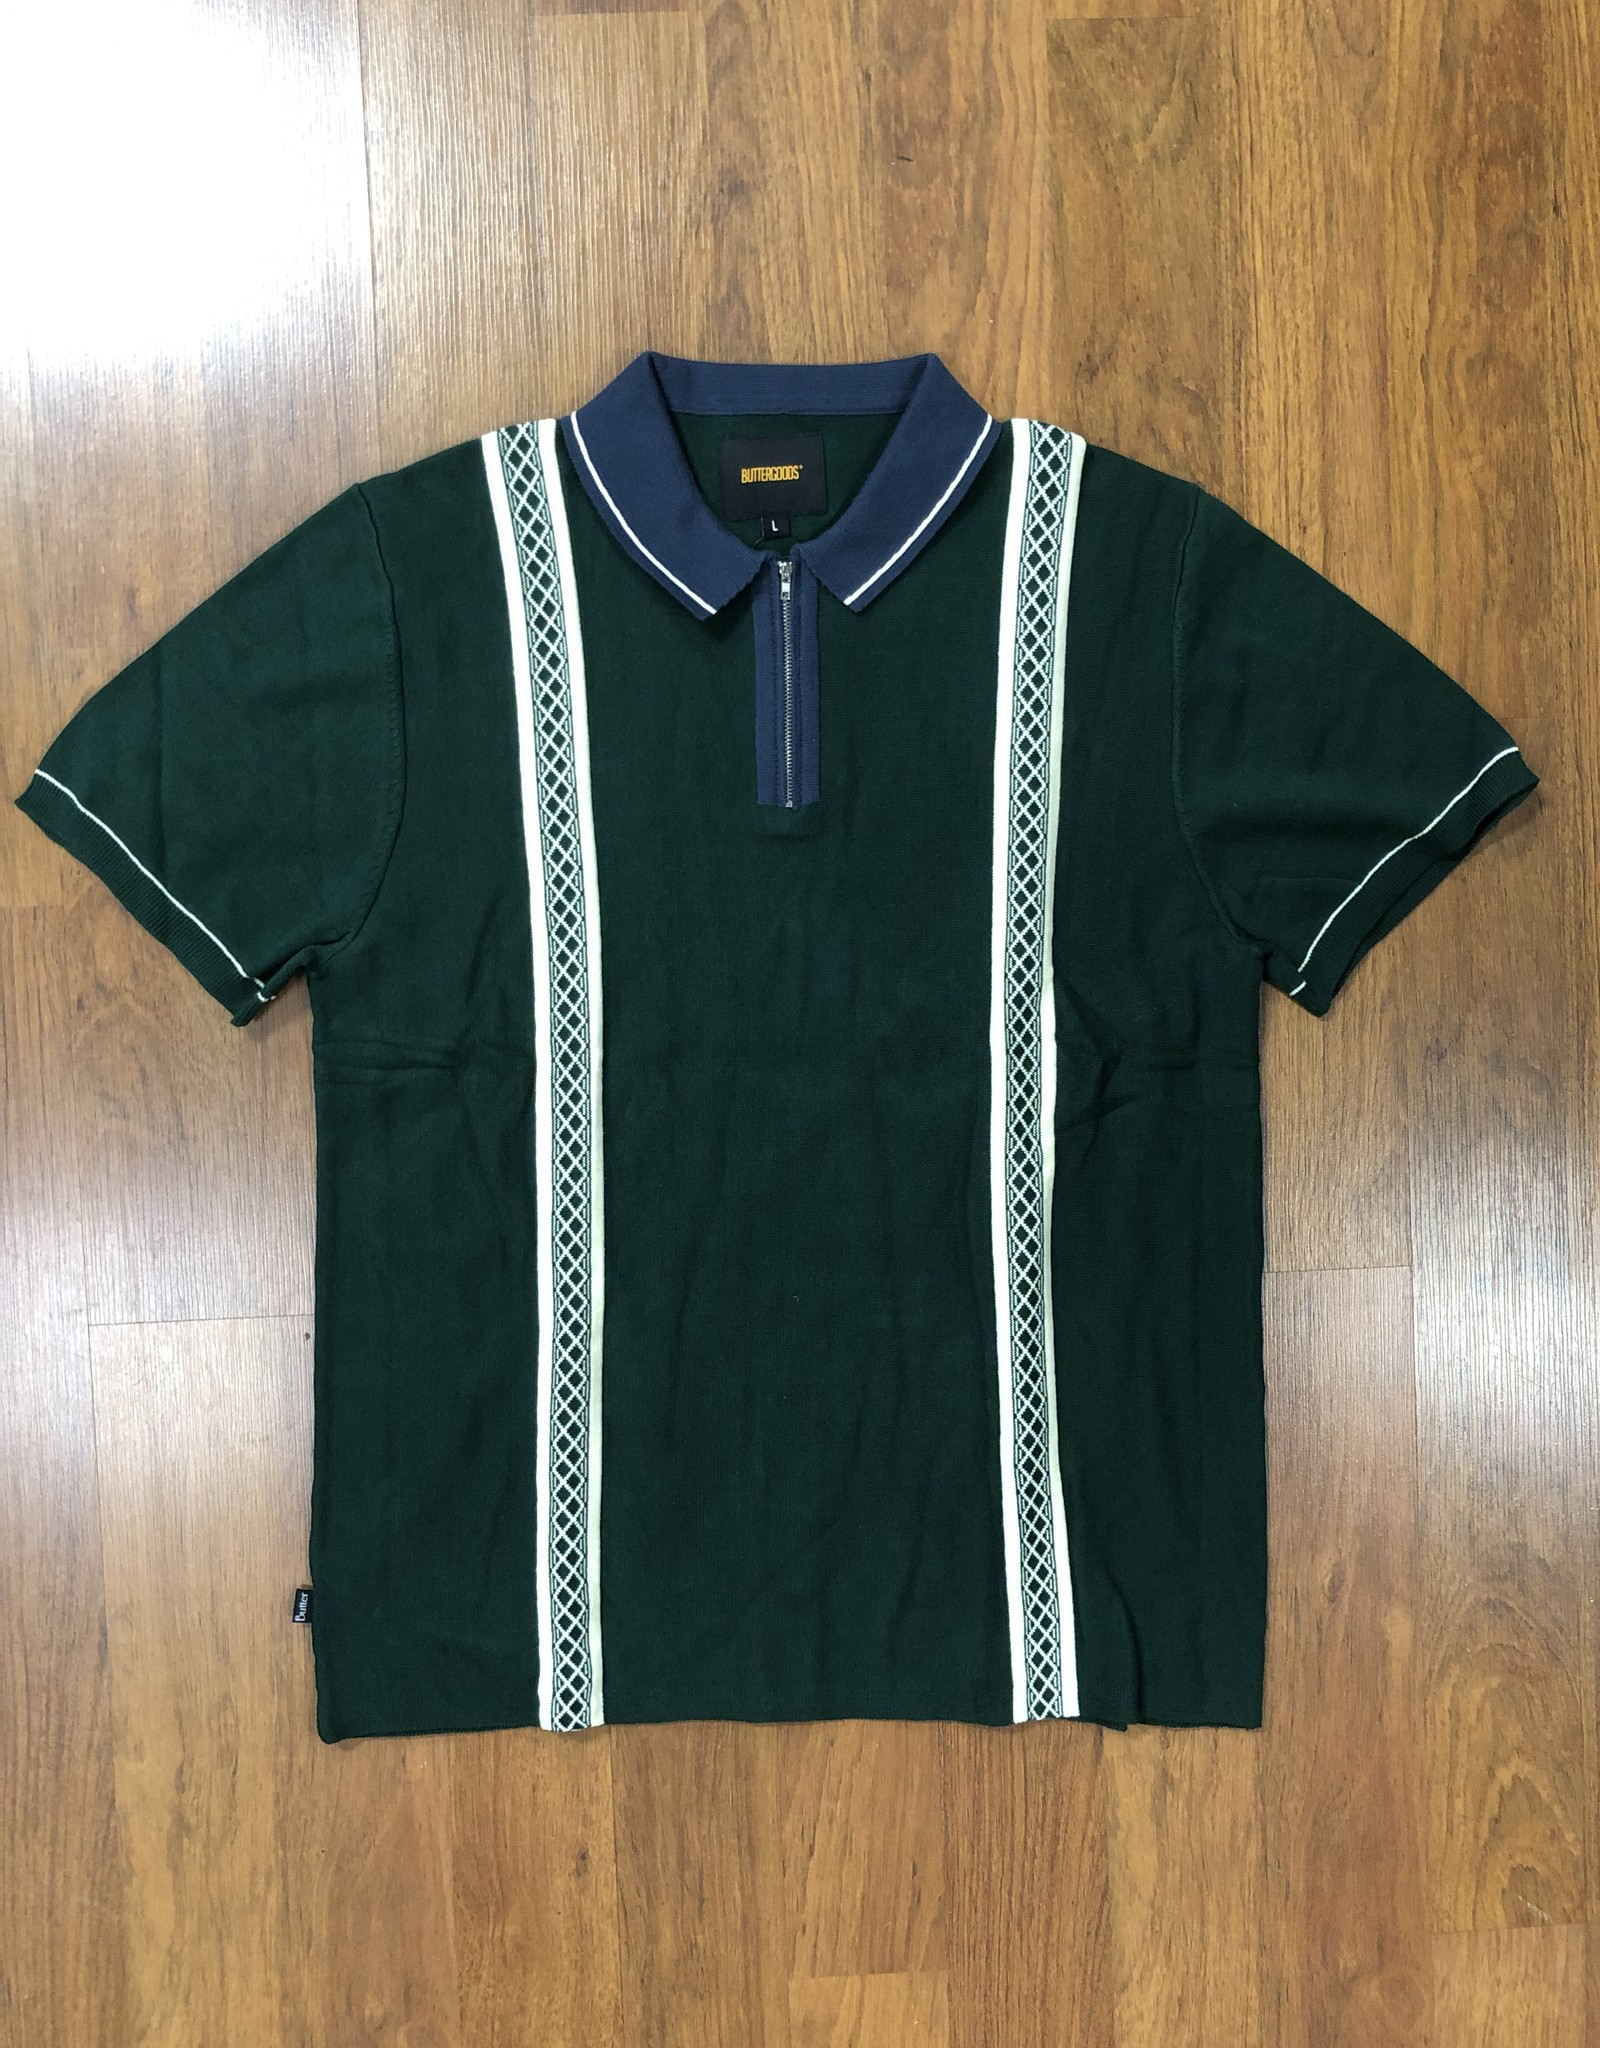 Butter Goods Newark Zip Polo Forest